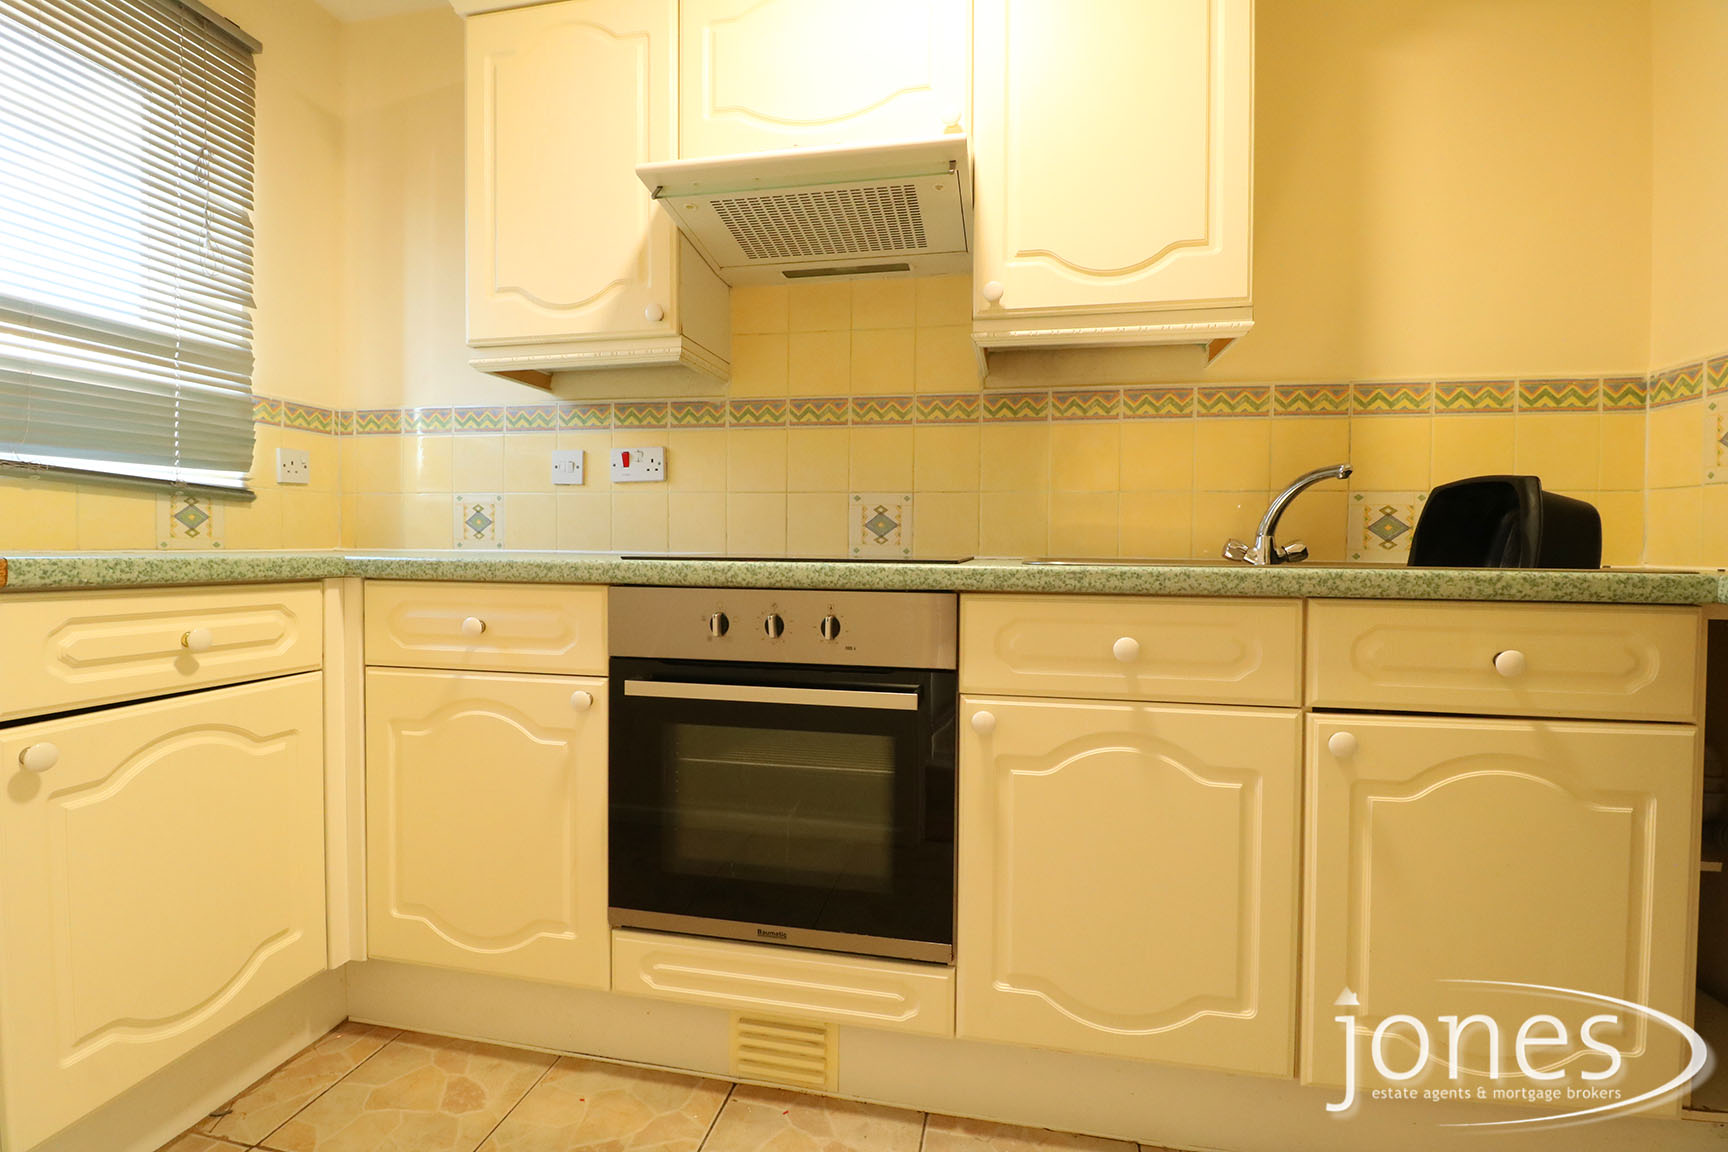 Home for Sale Let - Photo 03 Stanley Close,Thornaby, Stockton on Tees, TS17 6PP